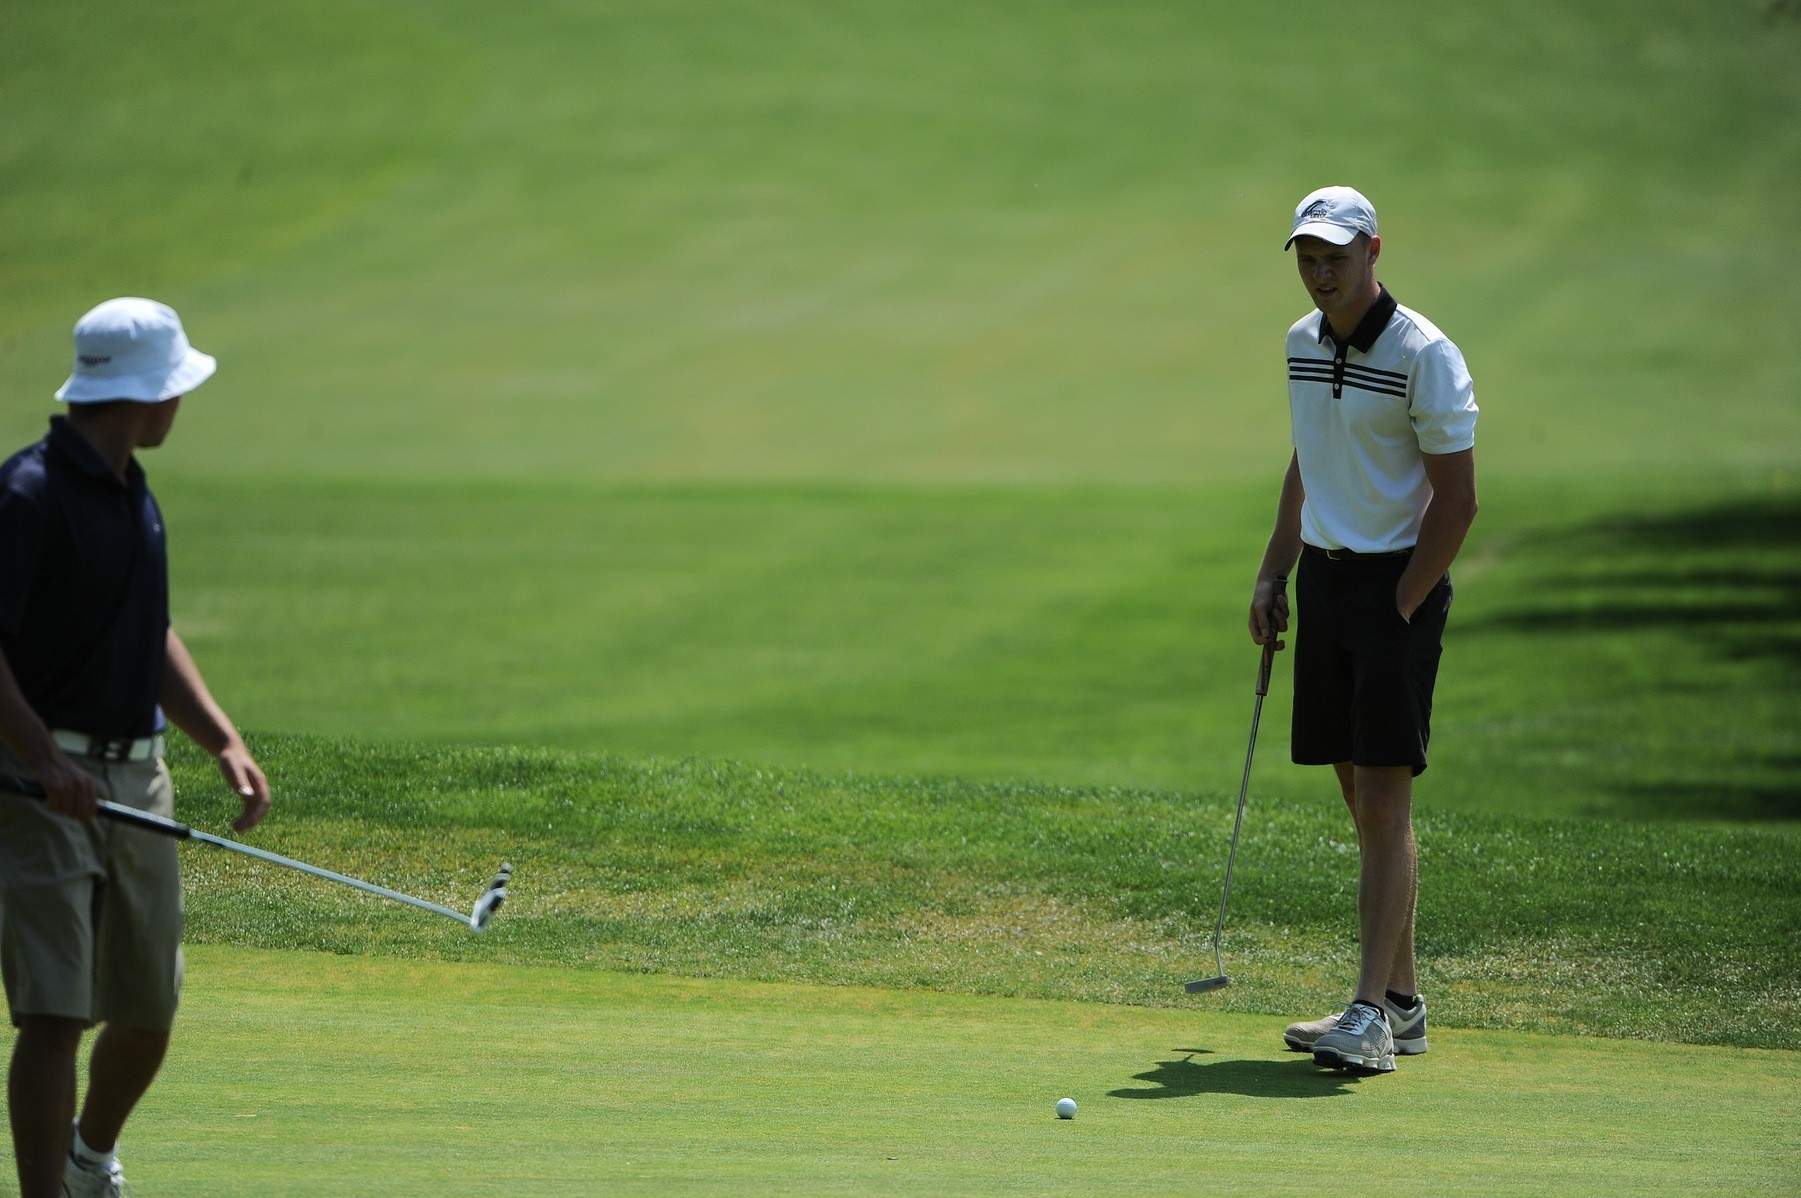 Fuglestad Shoots 77 in First Round of NCAA Championships